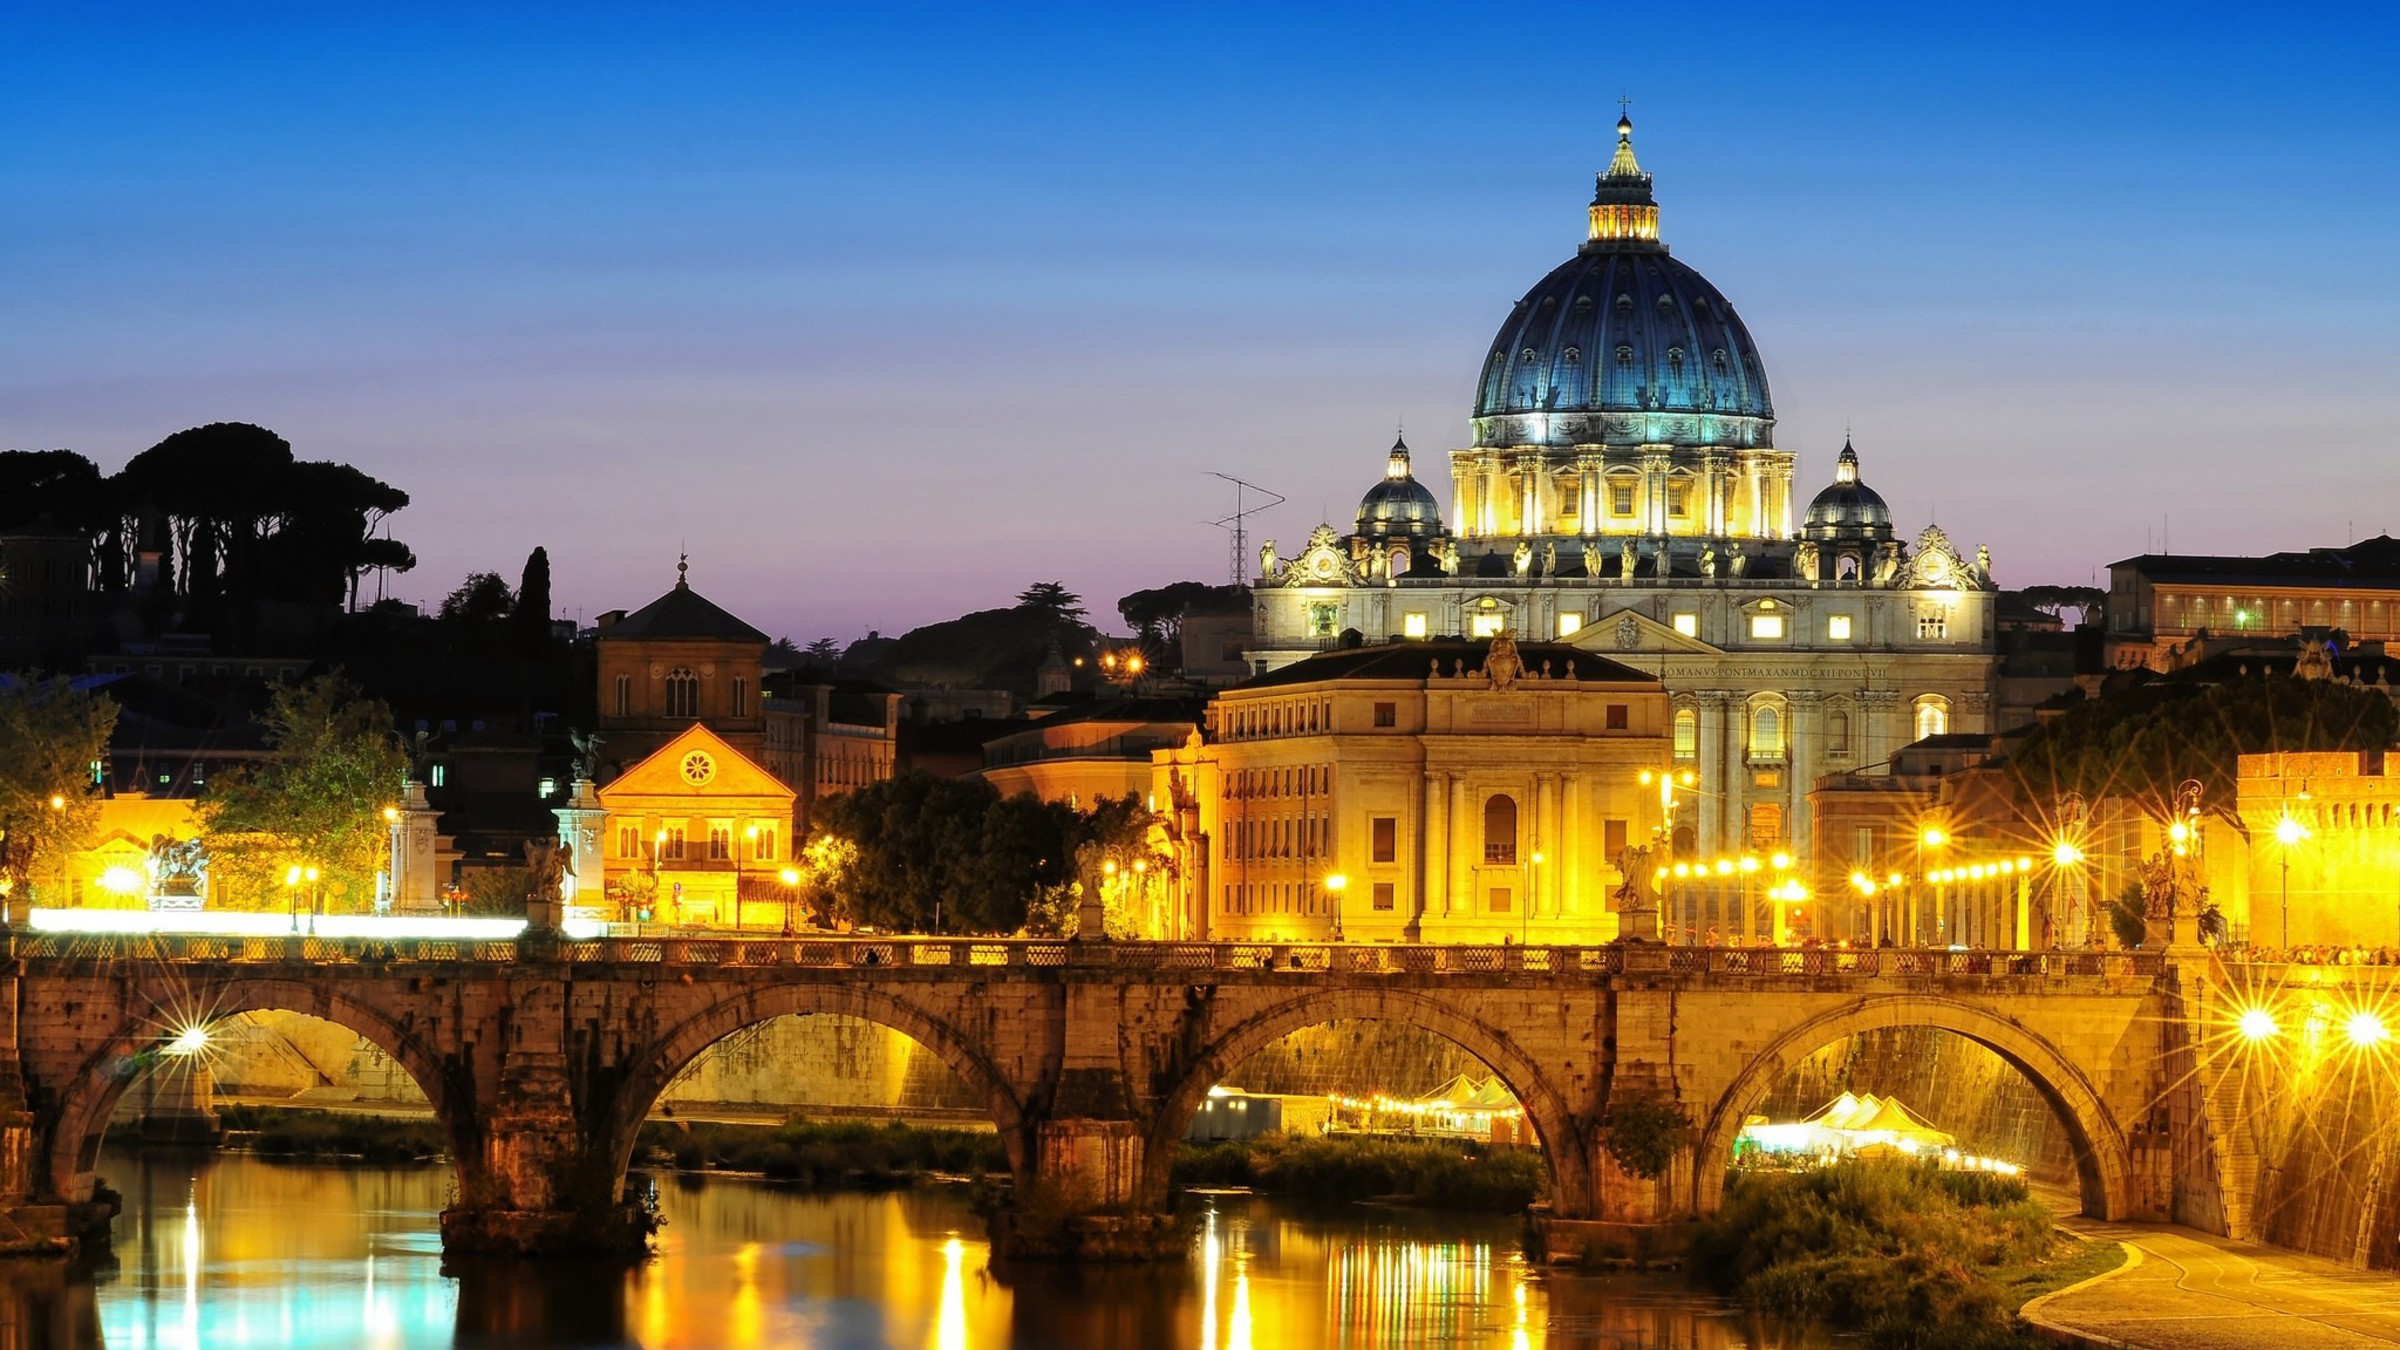 Roma italia wallpaper 11371 pc en for Wallpaper italia